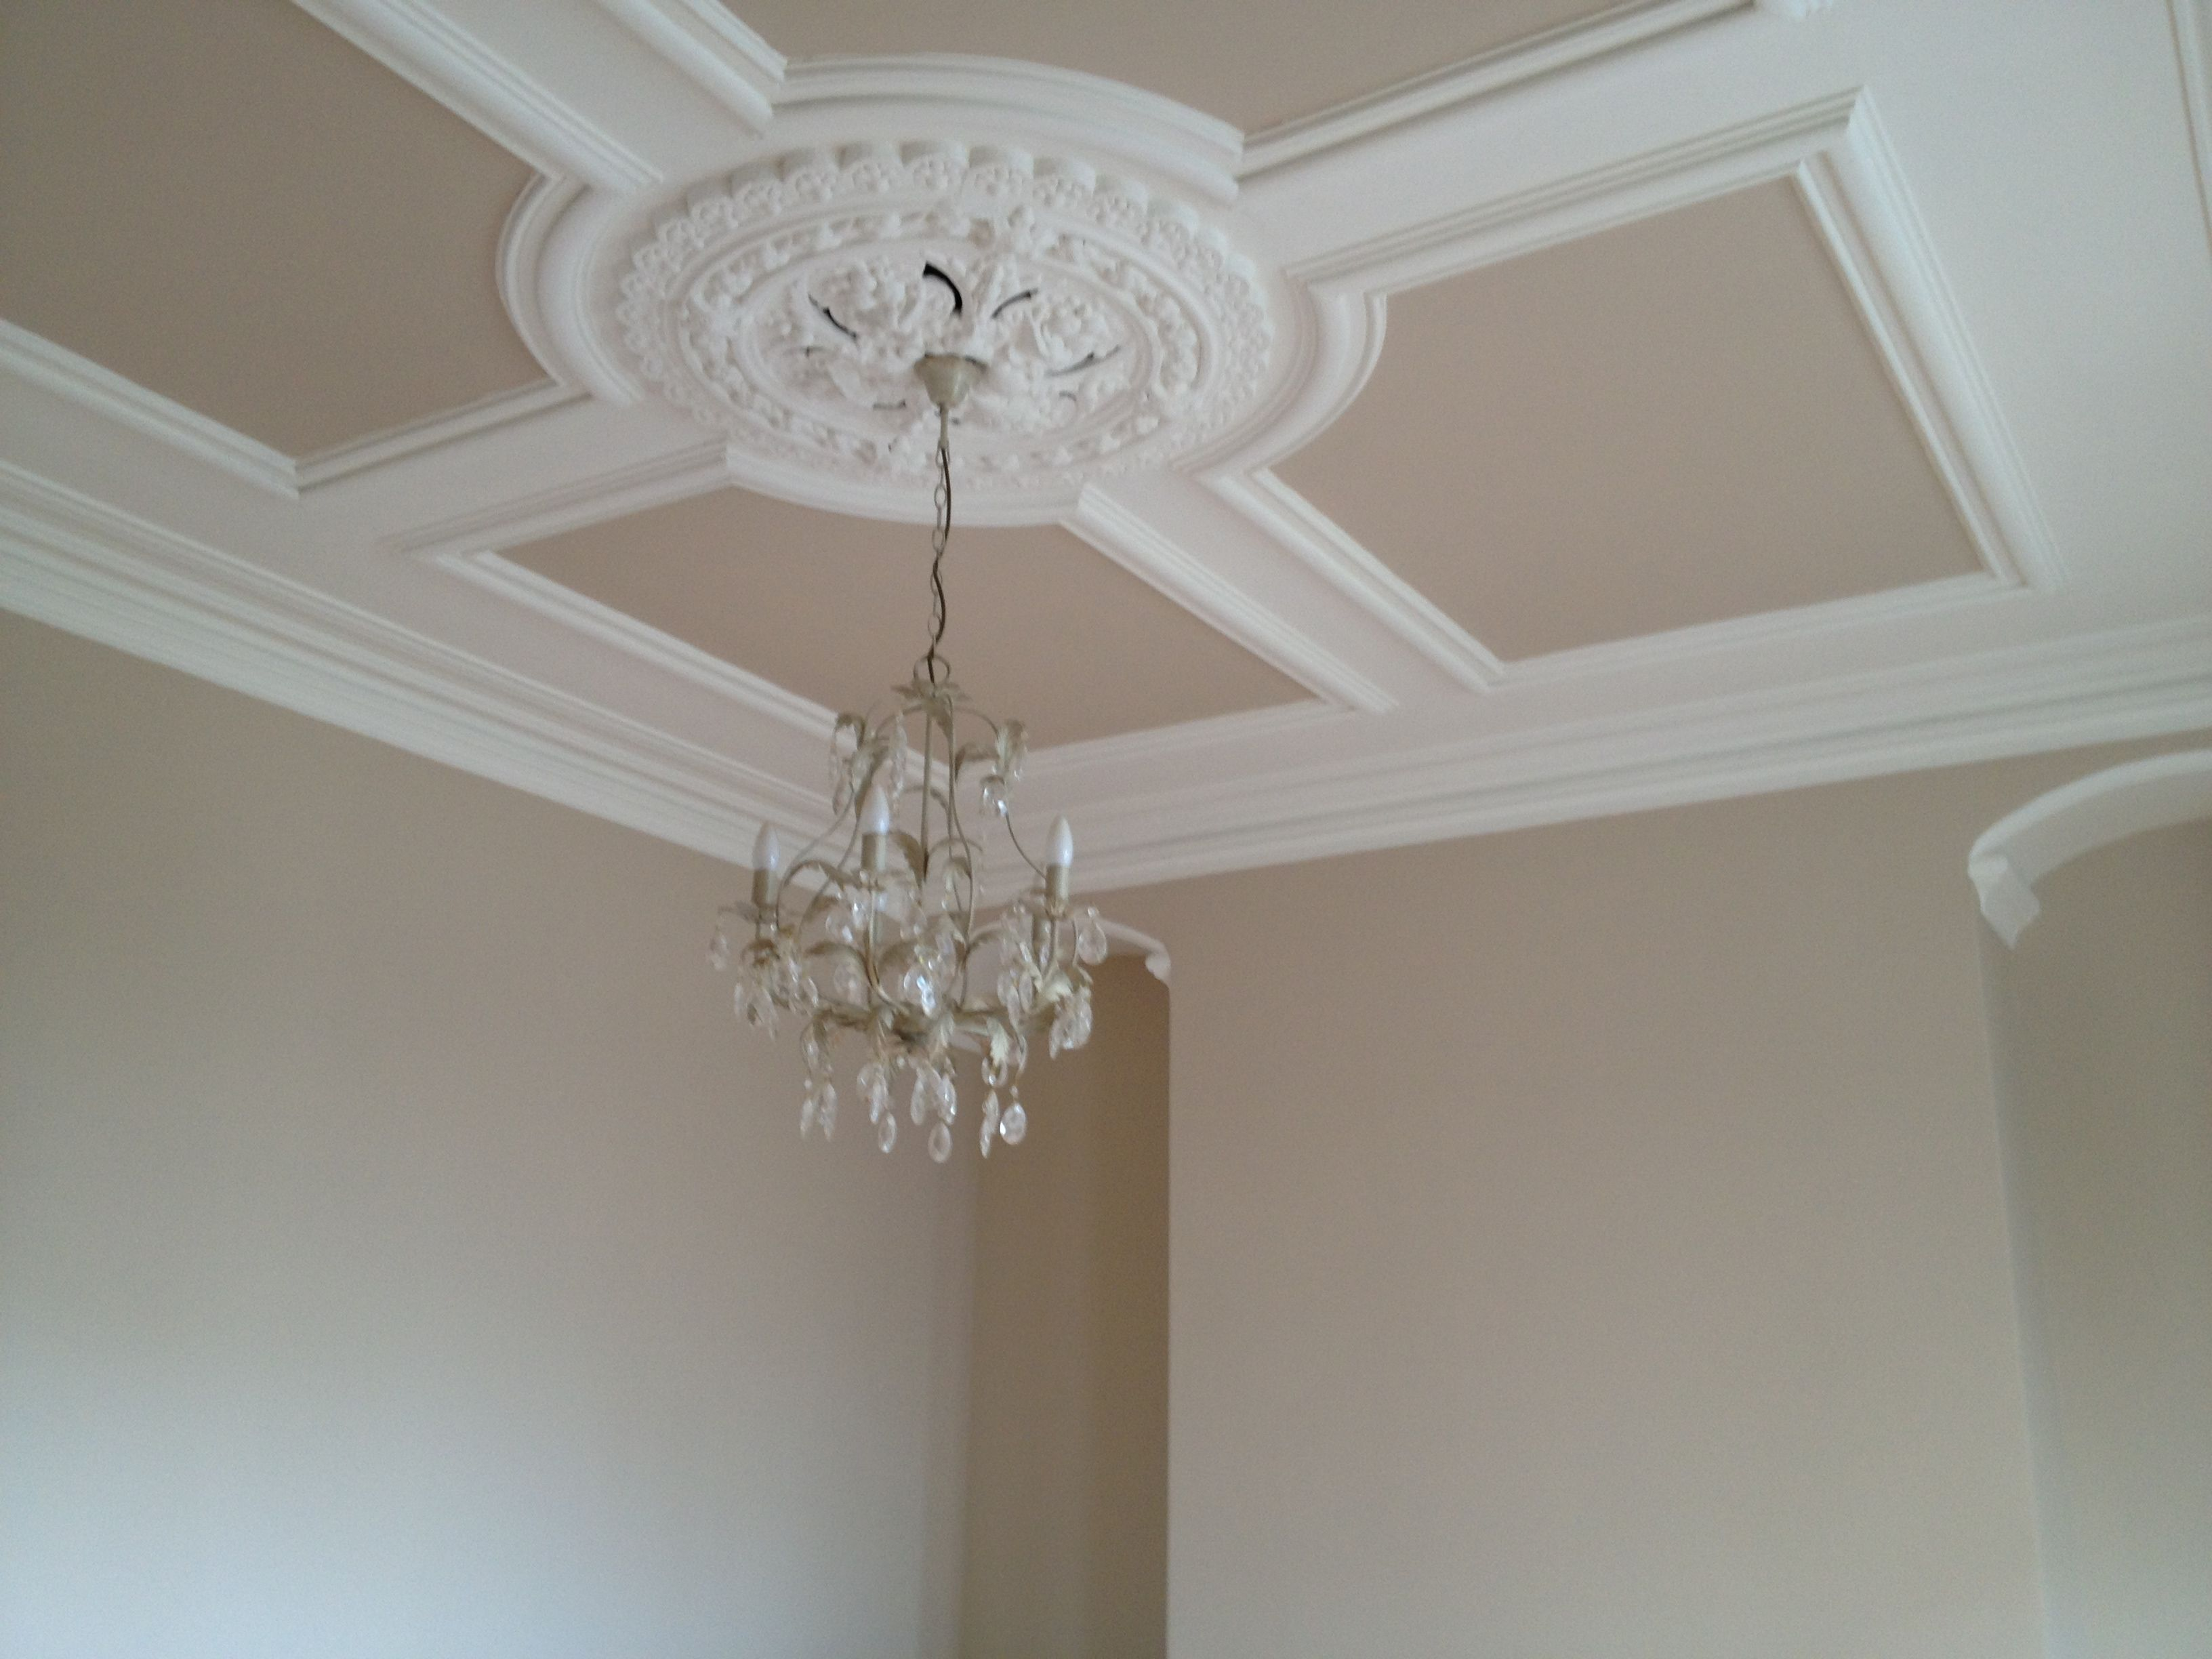 Victorian Ceiling Rose Coving Love It Even More Now Its Painted A Few Shades Darker As Light Fixtures Bedroom Ceiling Plaster Ceiling Design Ceiling Rose